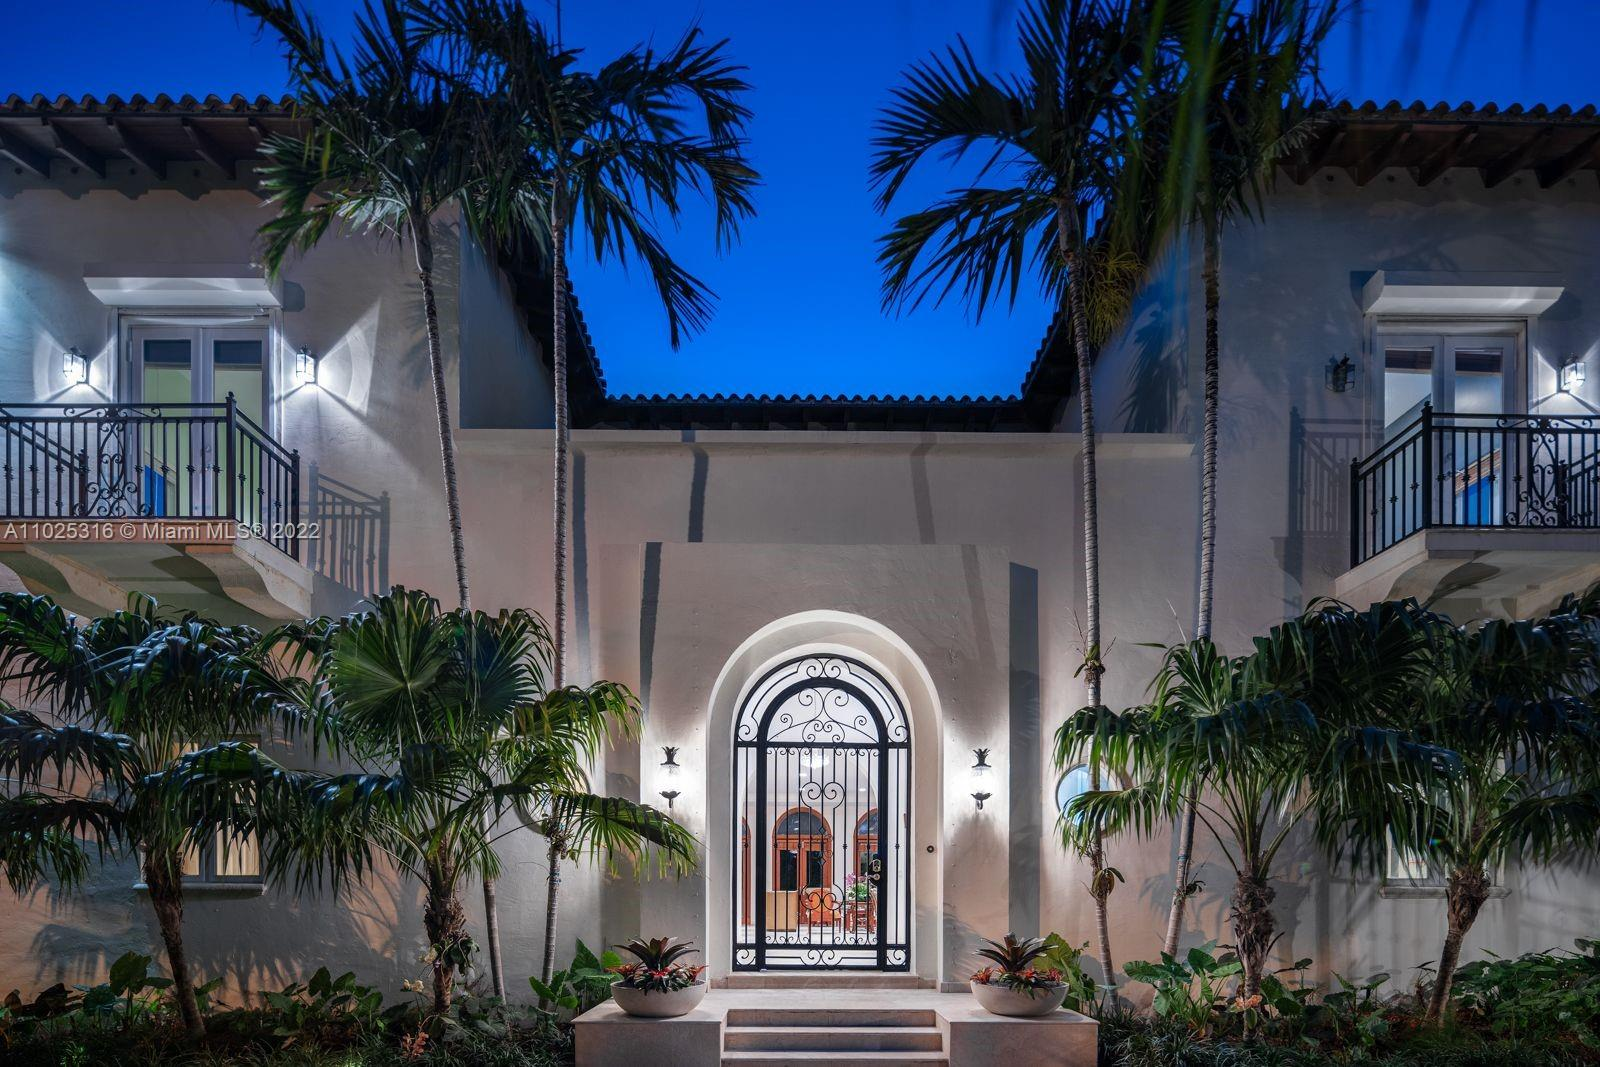 The perfect home for entertaining! Classic & timeless this elegant Mediterranean gem, designed by top architect Rafael Portuondo, is tucked away on a quiet side street. Impeccable landscaping & long private driveway greet you as you approach the grand entryway. Step inside the impressive foyer, then marvel at the Spectacular great rm w/14 ft ceilings & beautiful built in bar area. The formal dining rm offers seating for 16. Six spacious rooms abound, 4 upstairs en suite. Spacious master suite has adjacent office/library, & sunset terrace. Spectacular loggia w/summer kitchen overlooks beautiful gardens, fountain & an alfresco dining area facing oversize pool. Corner home w/over 15,000 ft of land area. No access to home from A1A. Only access is through guard house. Also available for Rent.